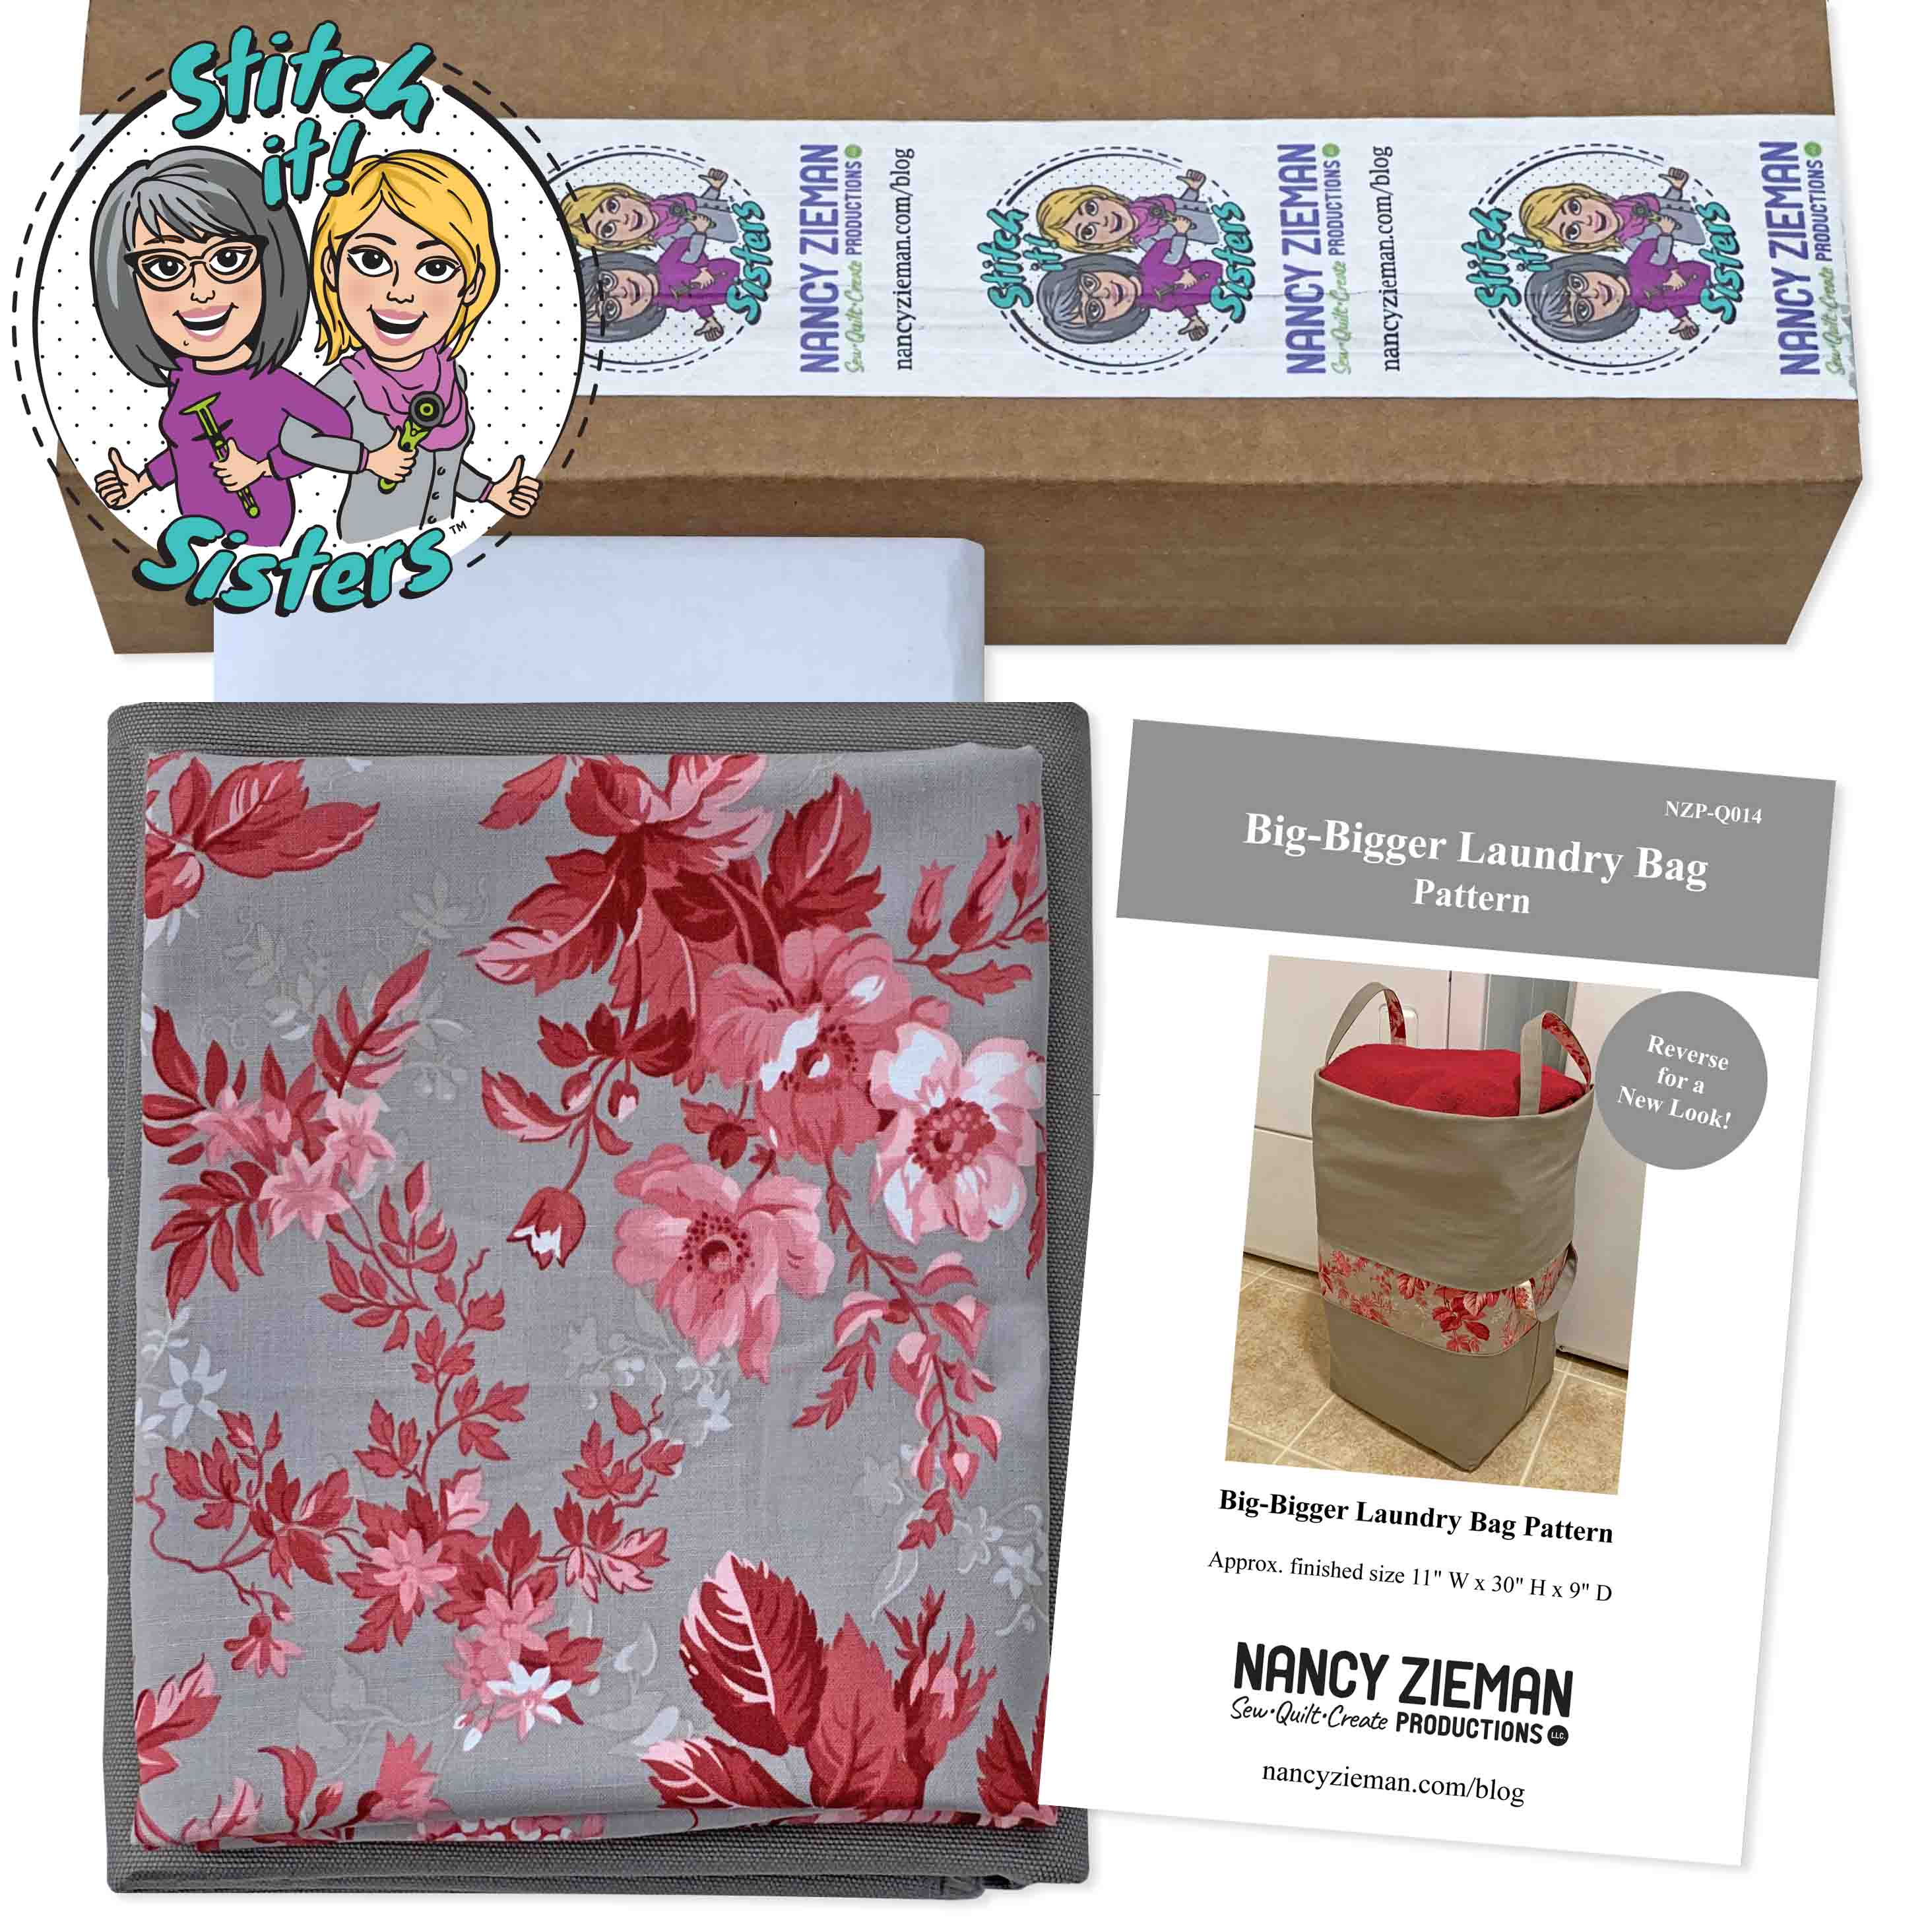 NEW! Big-Bigger Laundry Bag Bundle Box by the Stitch it! Sisters